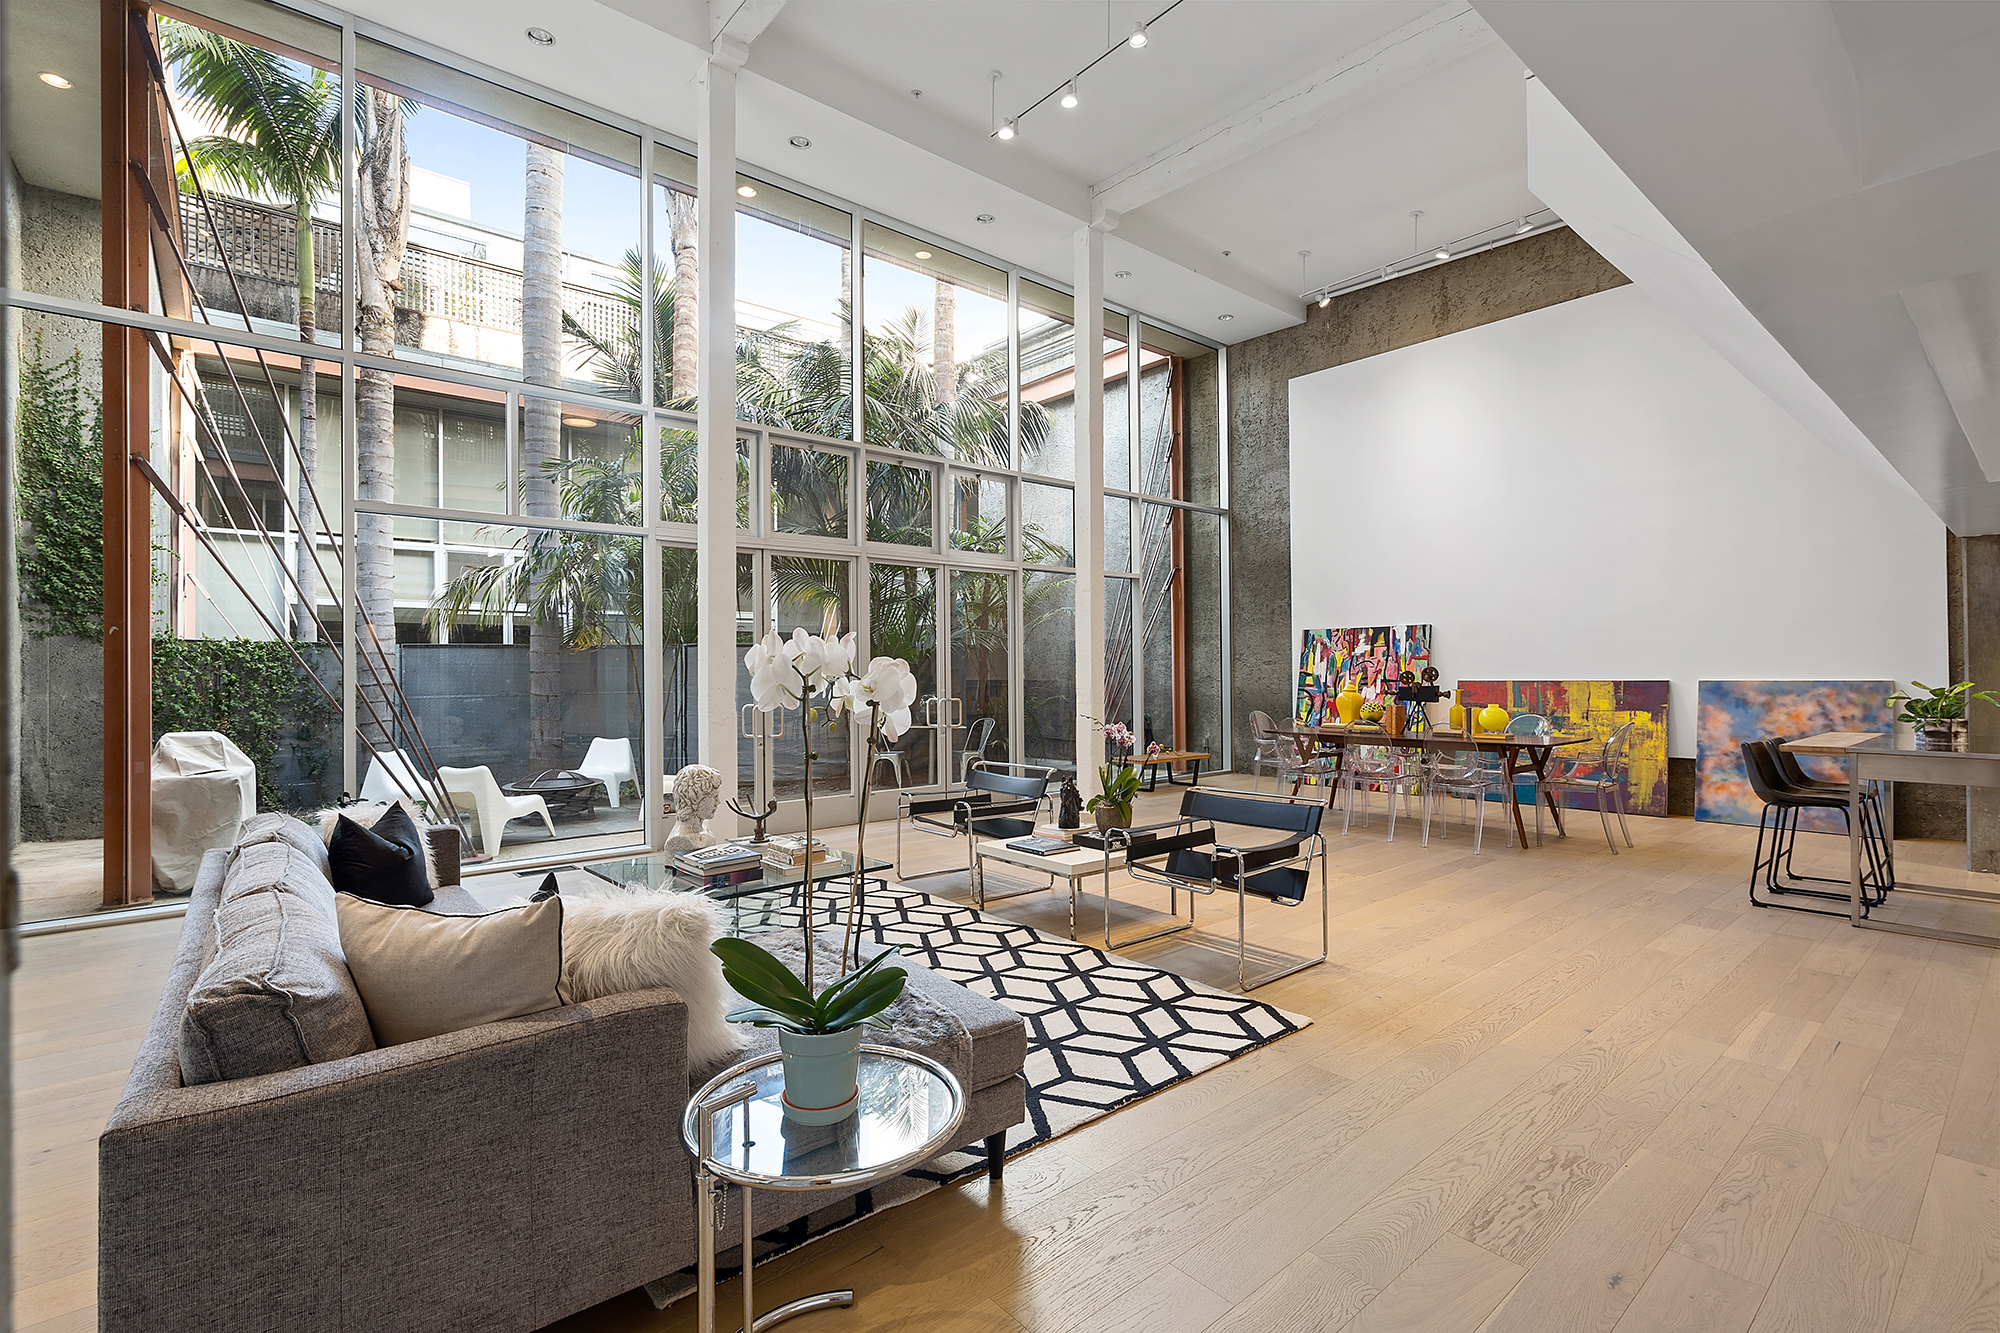 A huge living room with a wall of windows, a white canvas on a concrete wall, and track lighting on the ceiling.